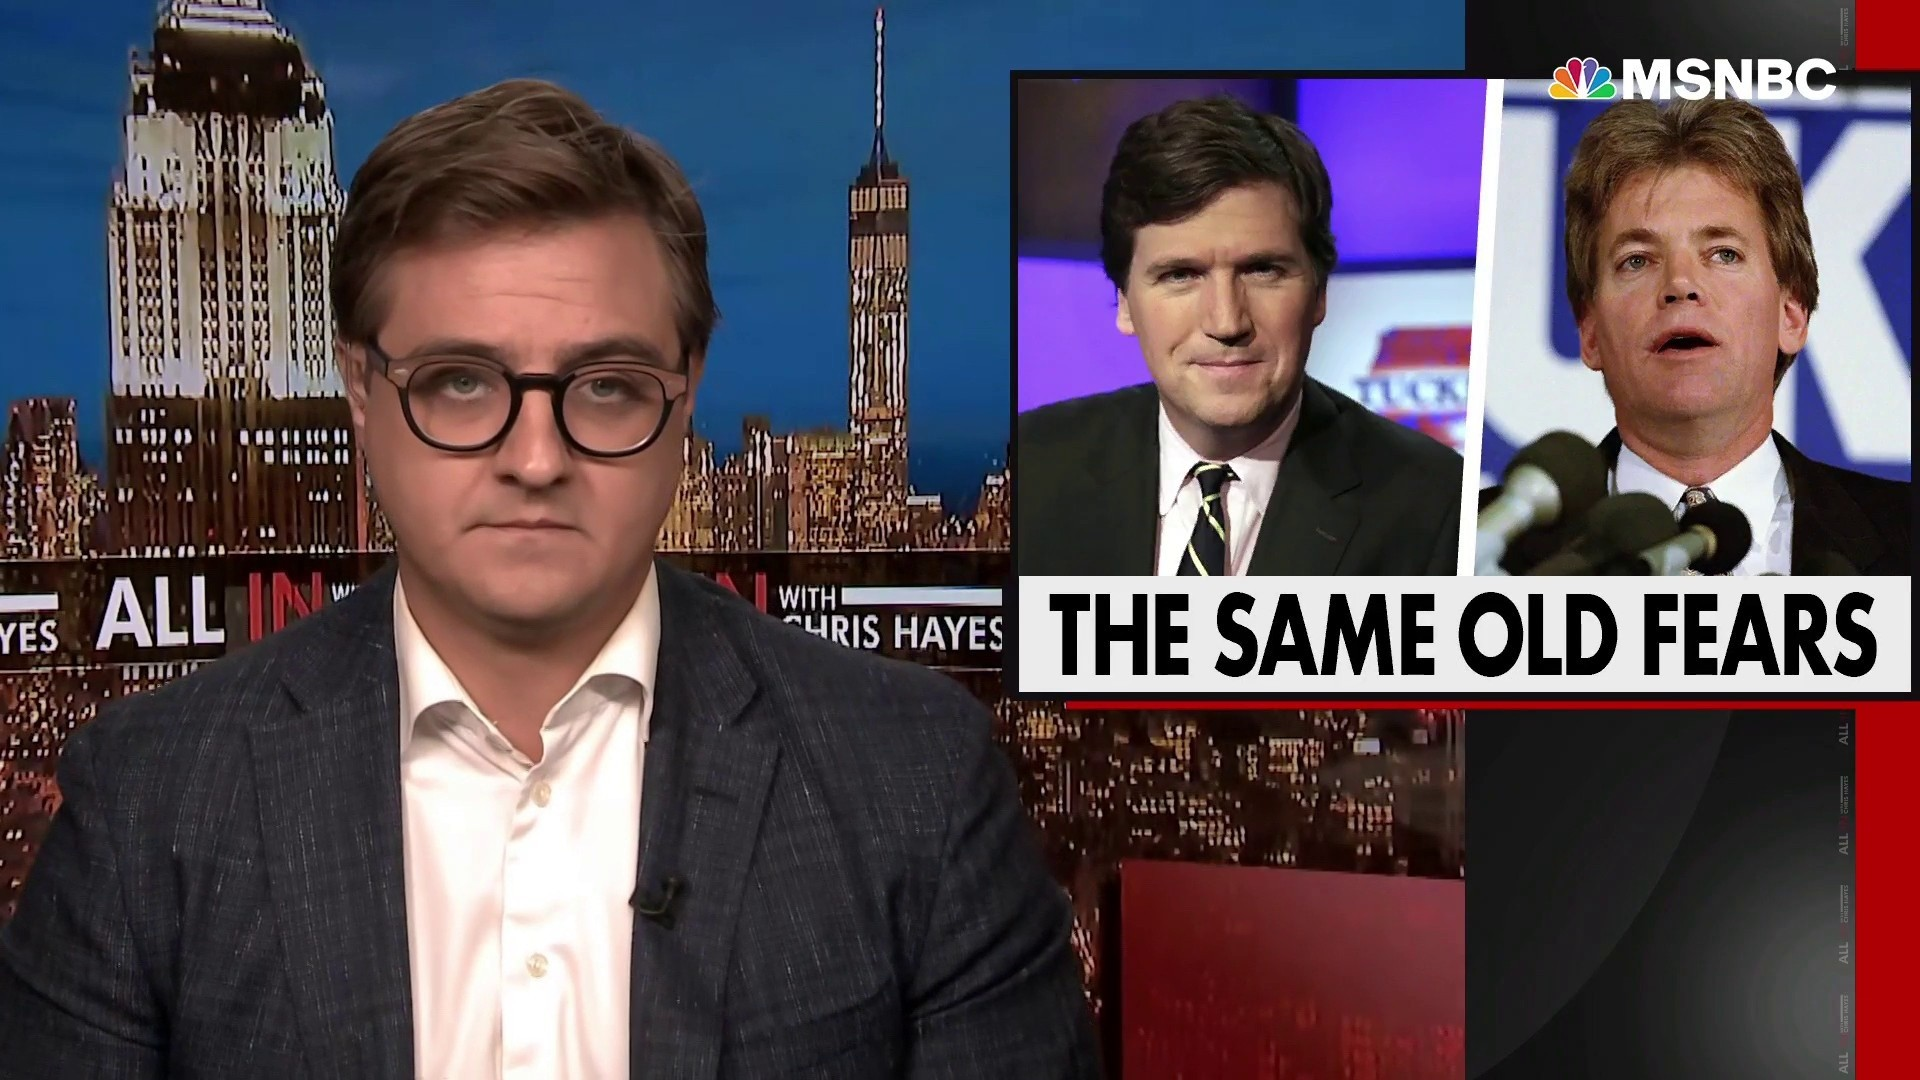 Chris Hayes takes apart the racist right-wing immigration theory